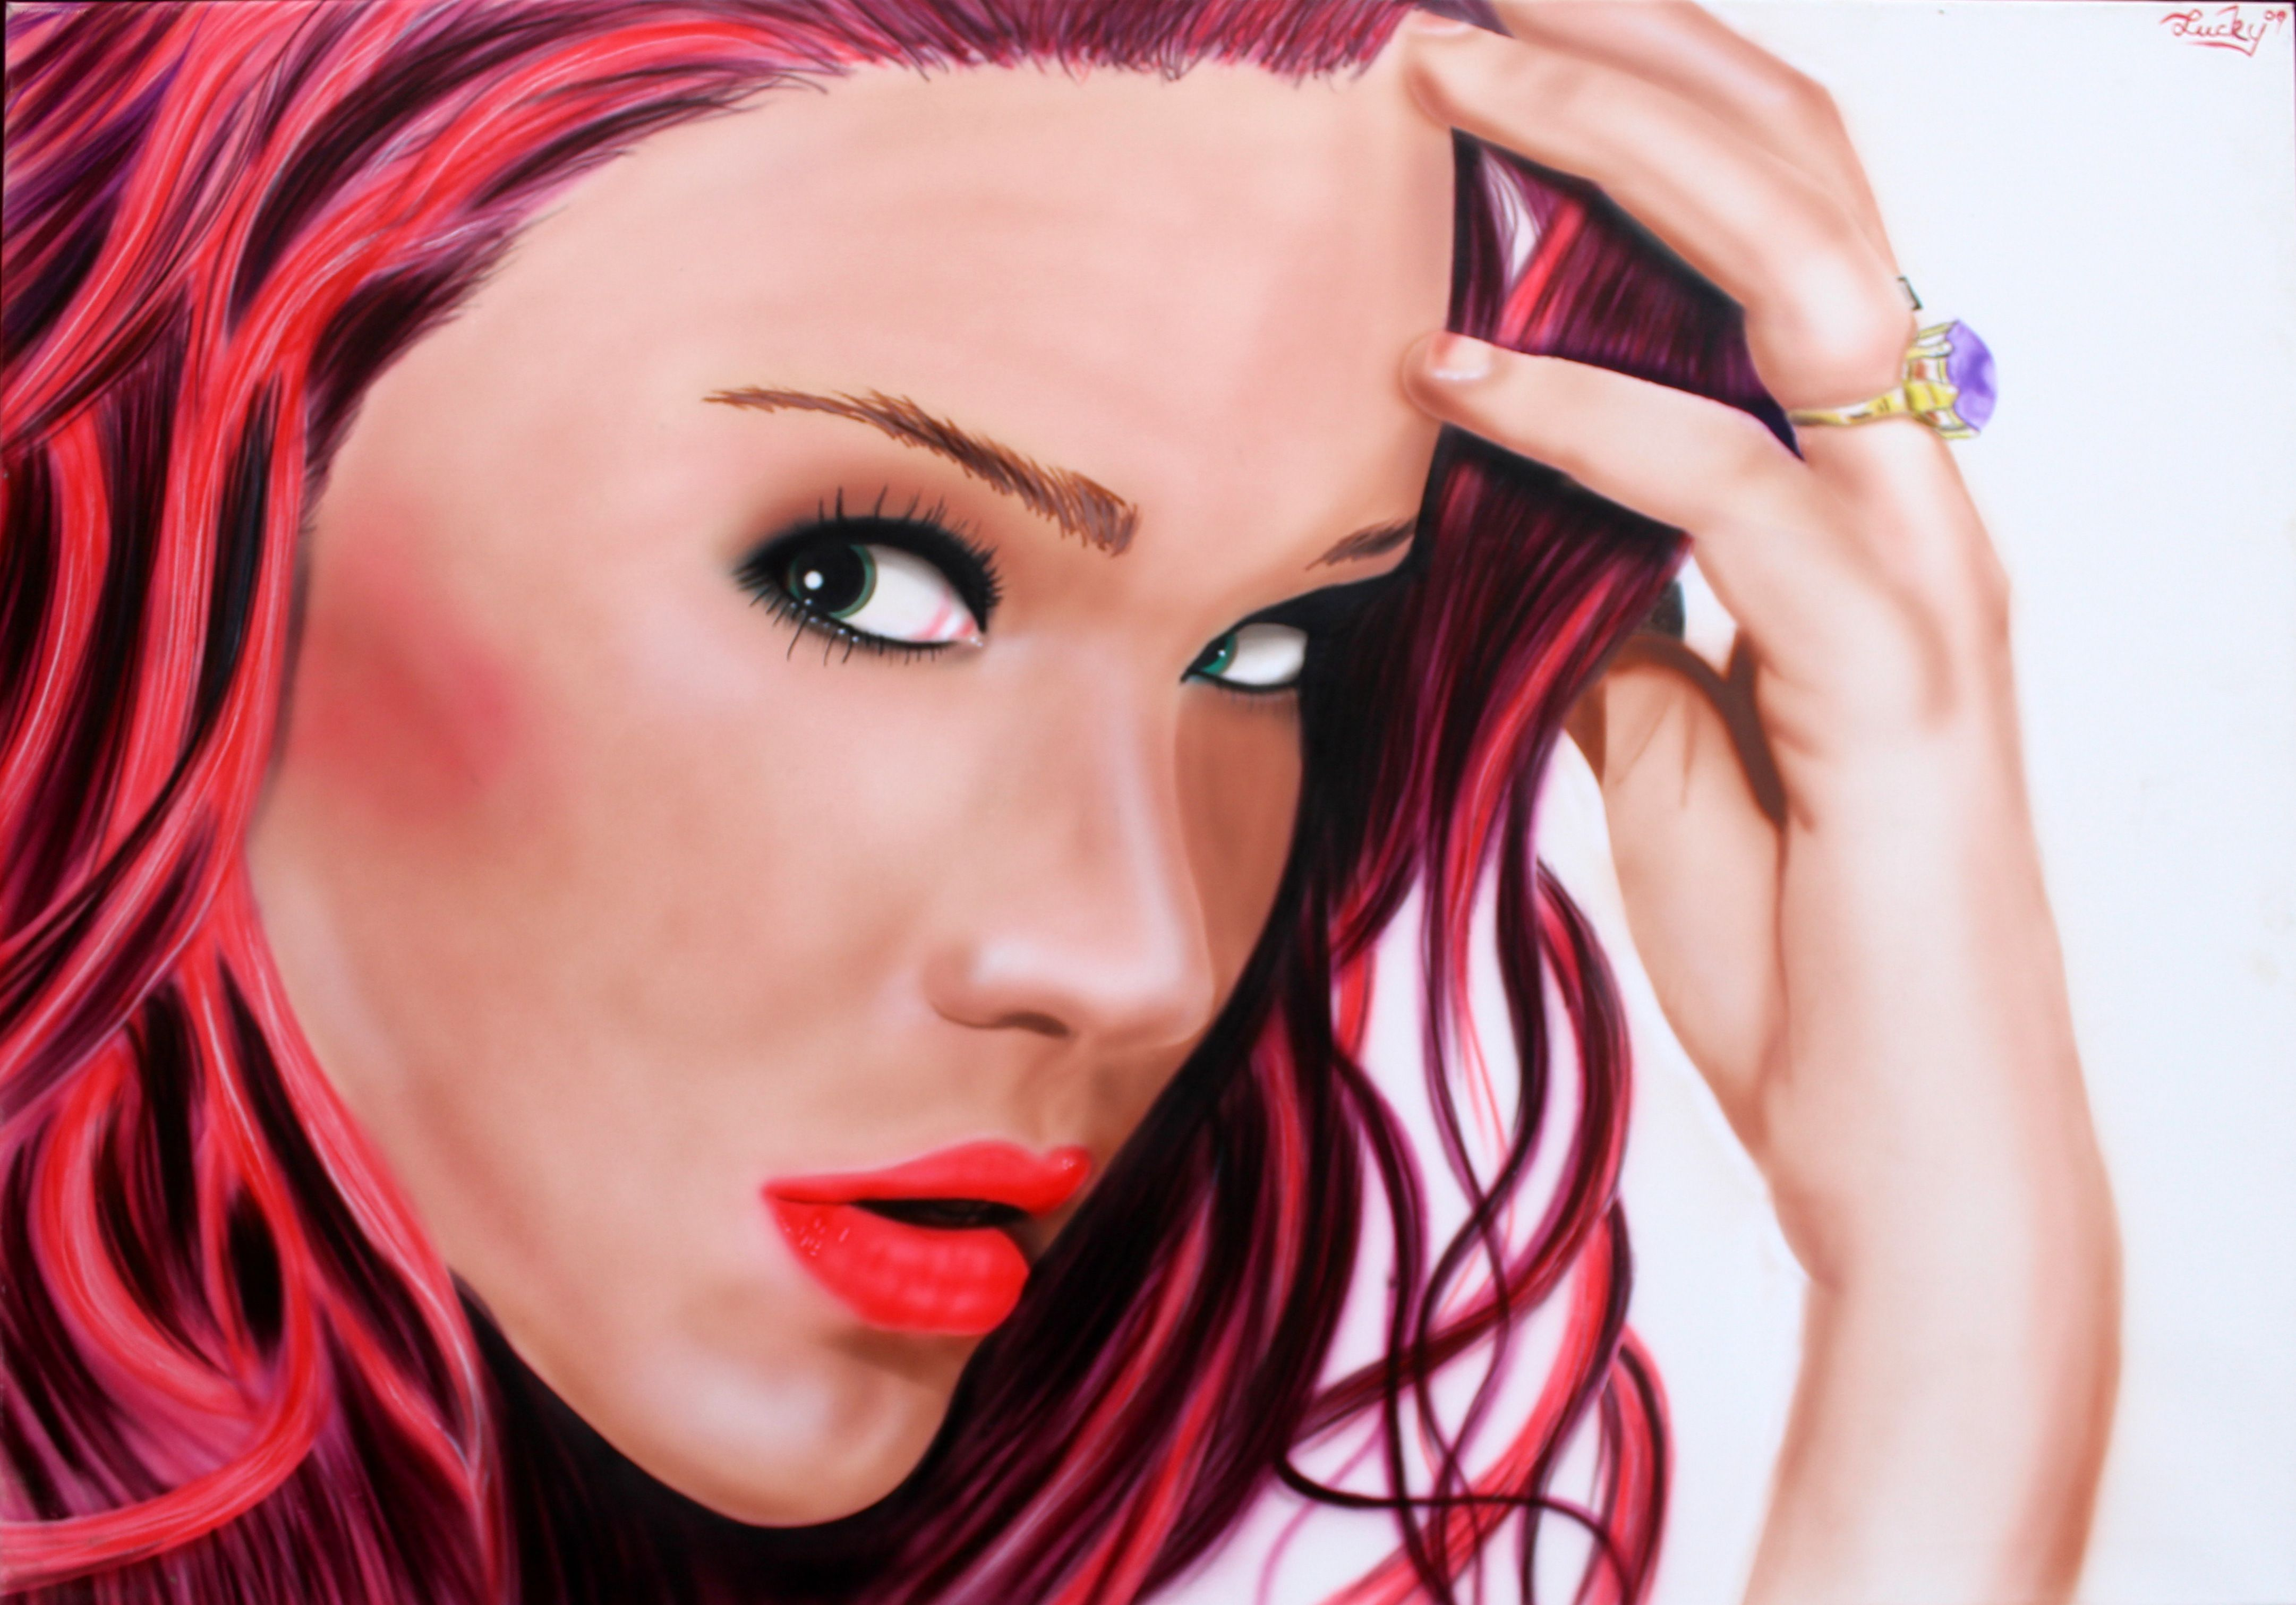 Joss stone airbrushed portrait by me, follow me on facebook   Lucky art